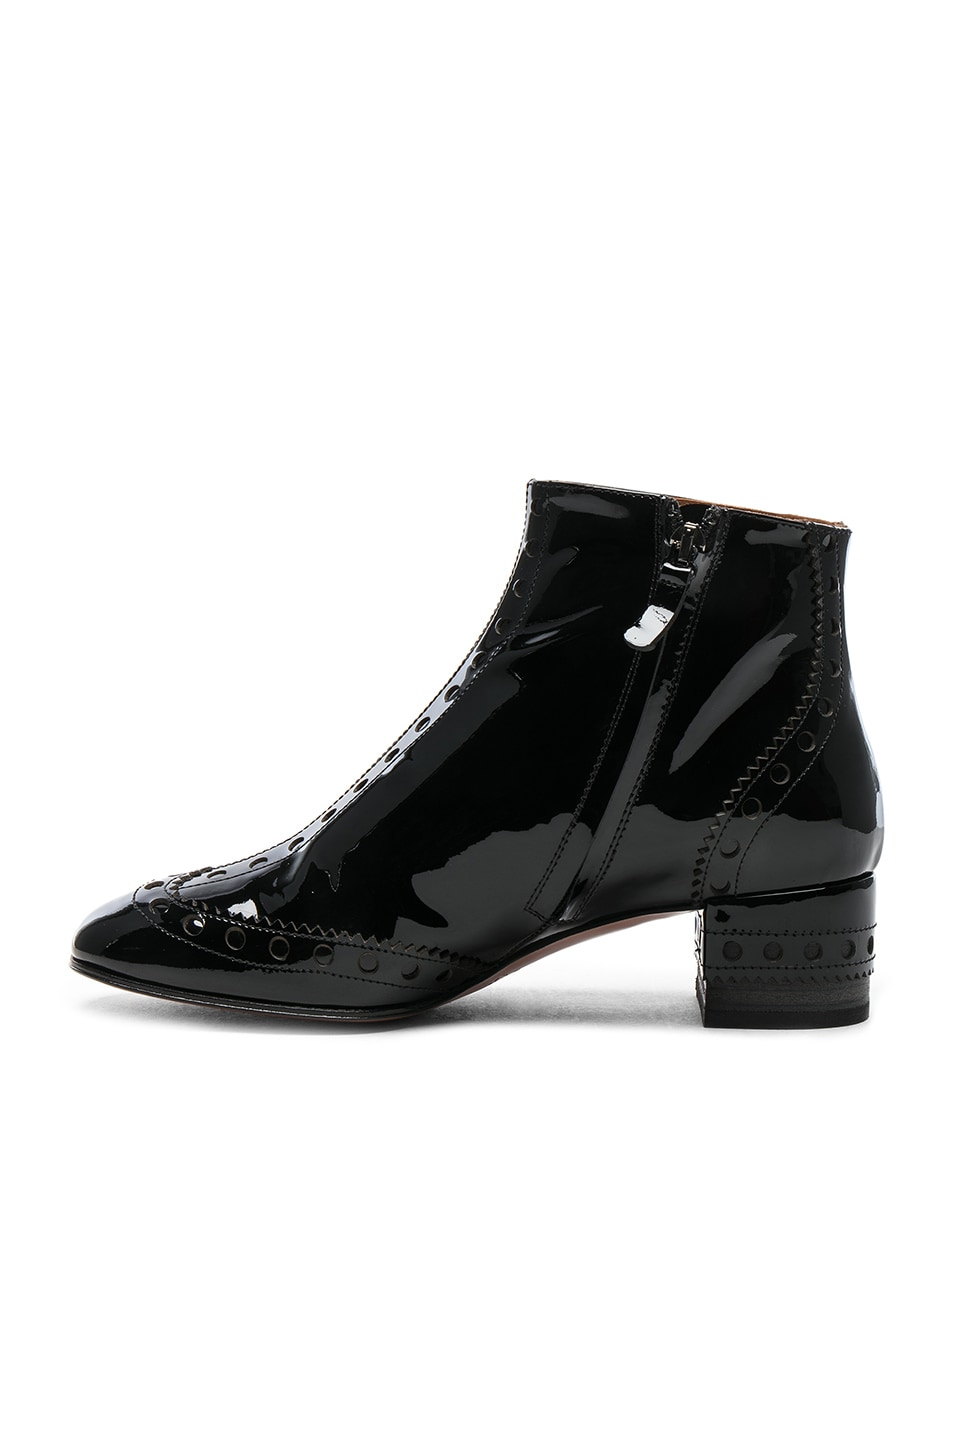 c78a4c43dbbc Image 5 of Chloe Perry Patent Leather Ankle Boots in Black